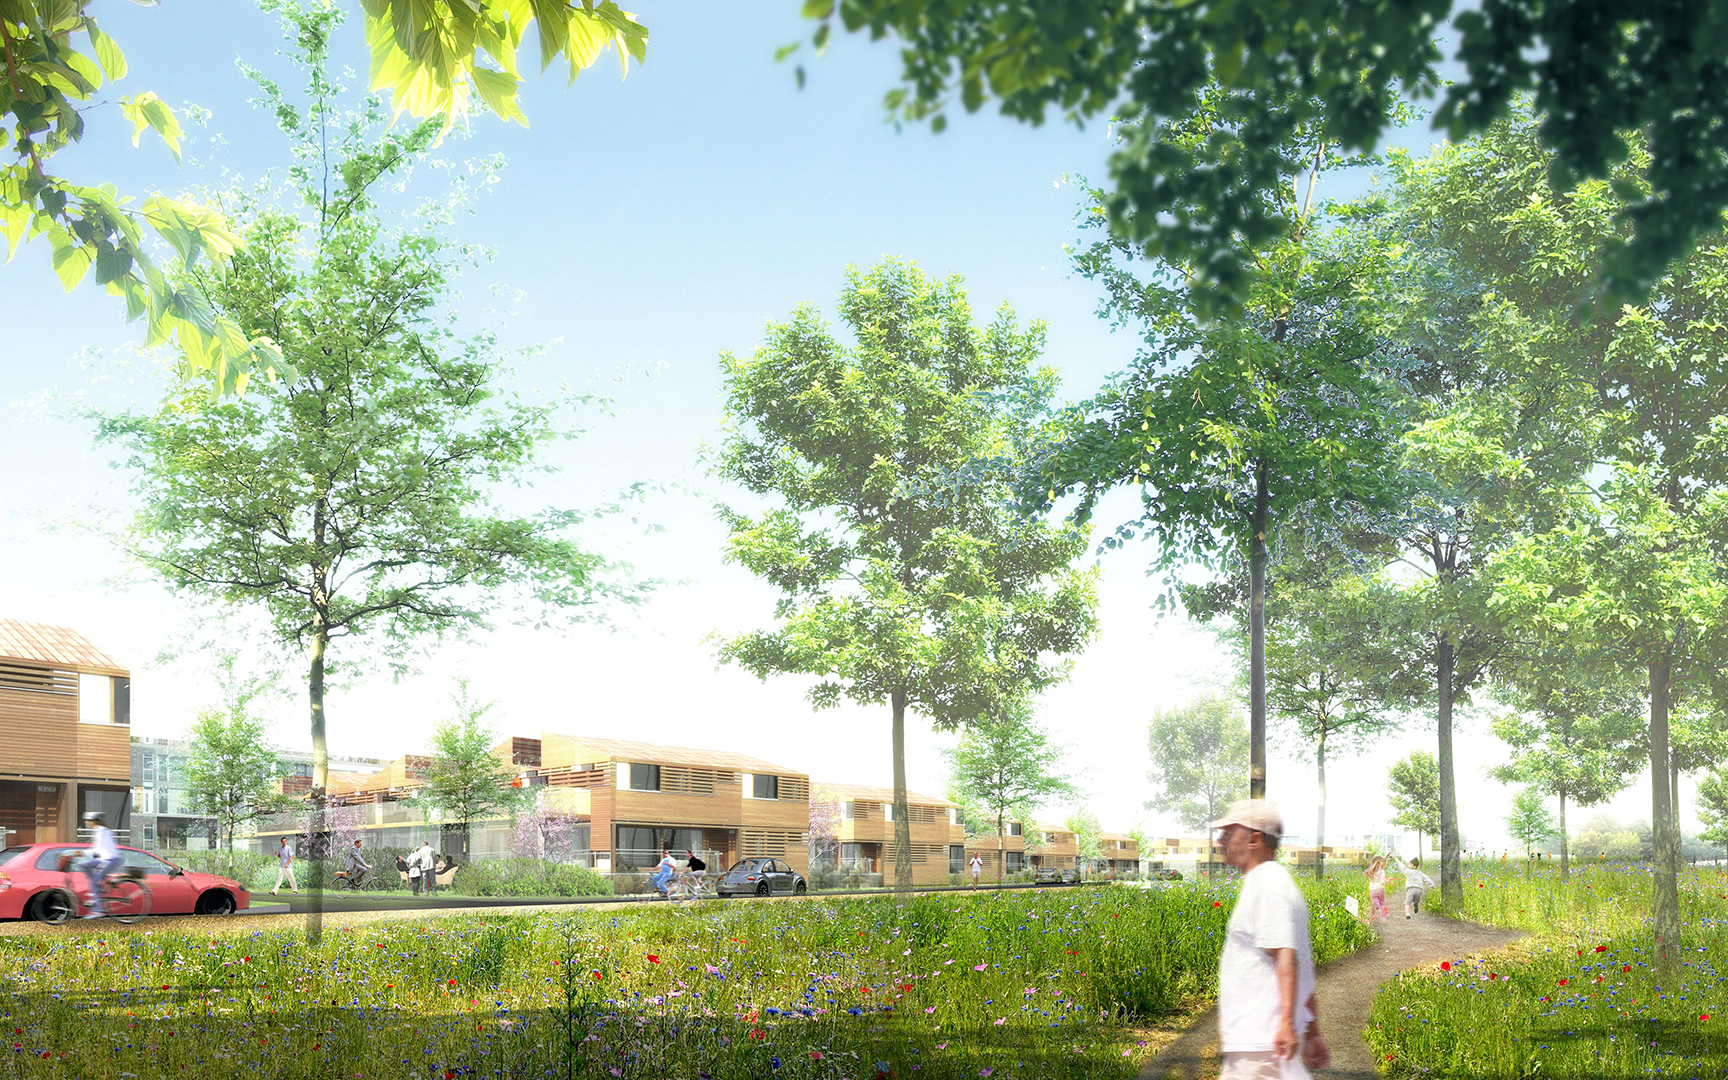 ANMA Reims Quartier de la 12e Escadre